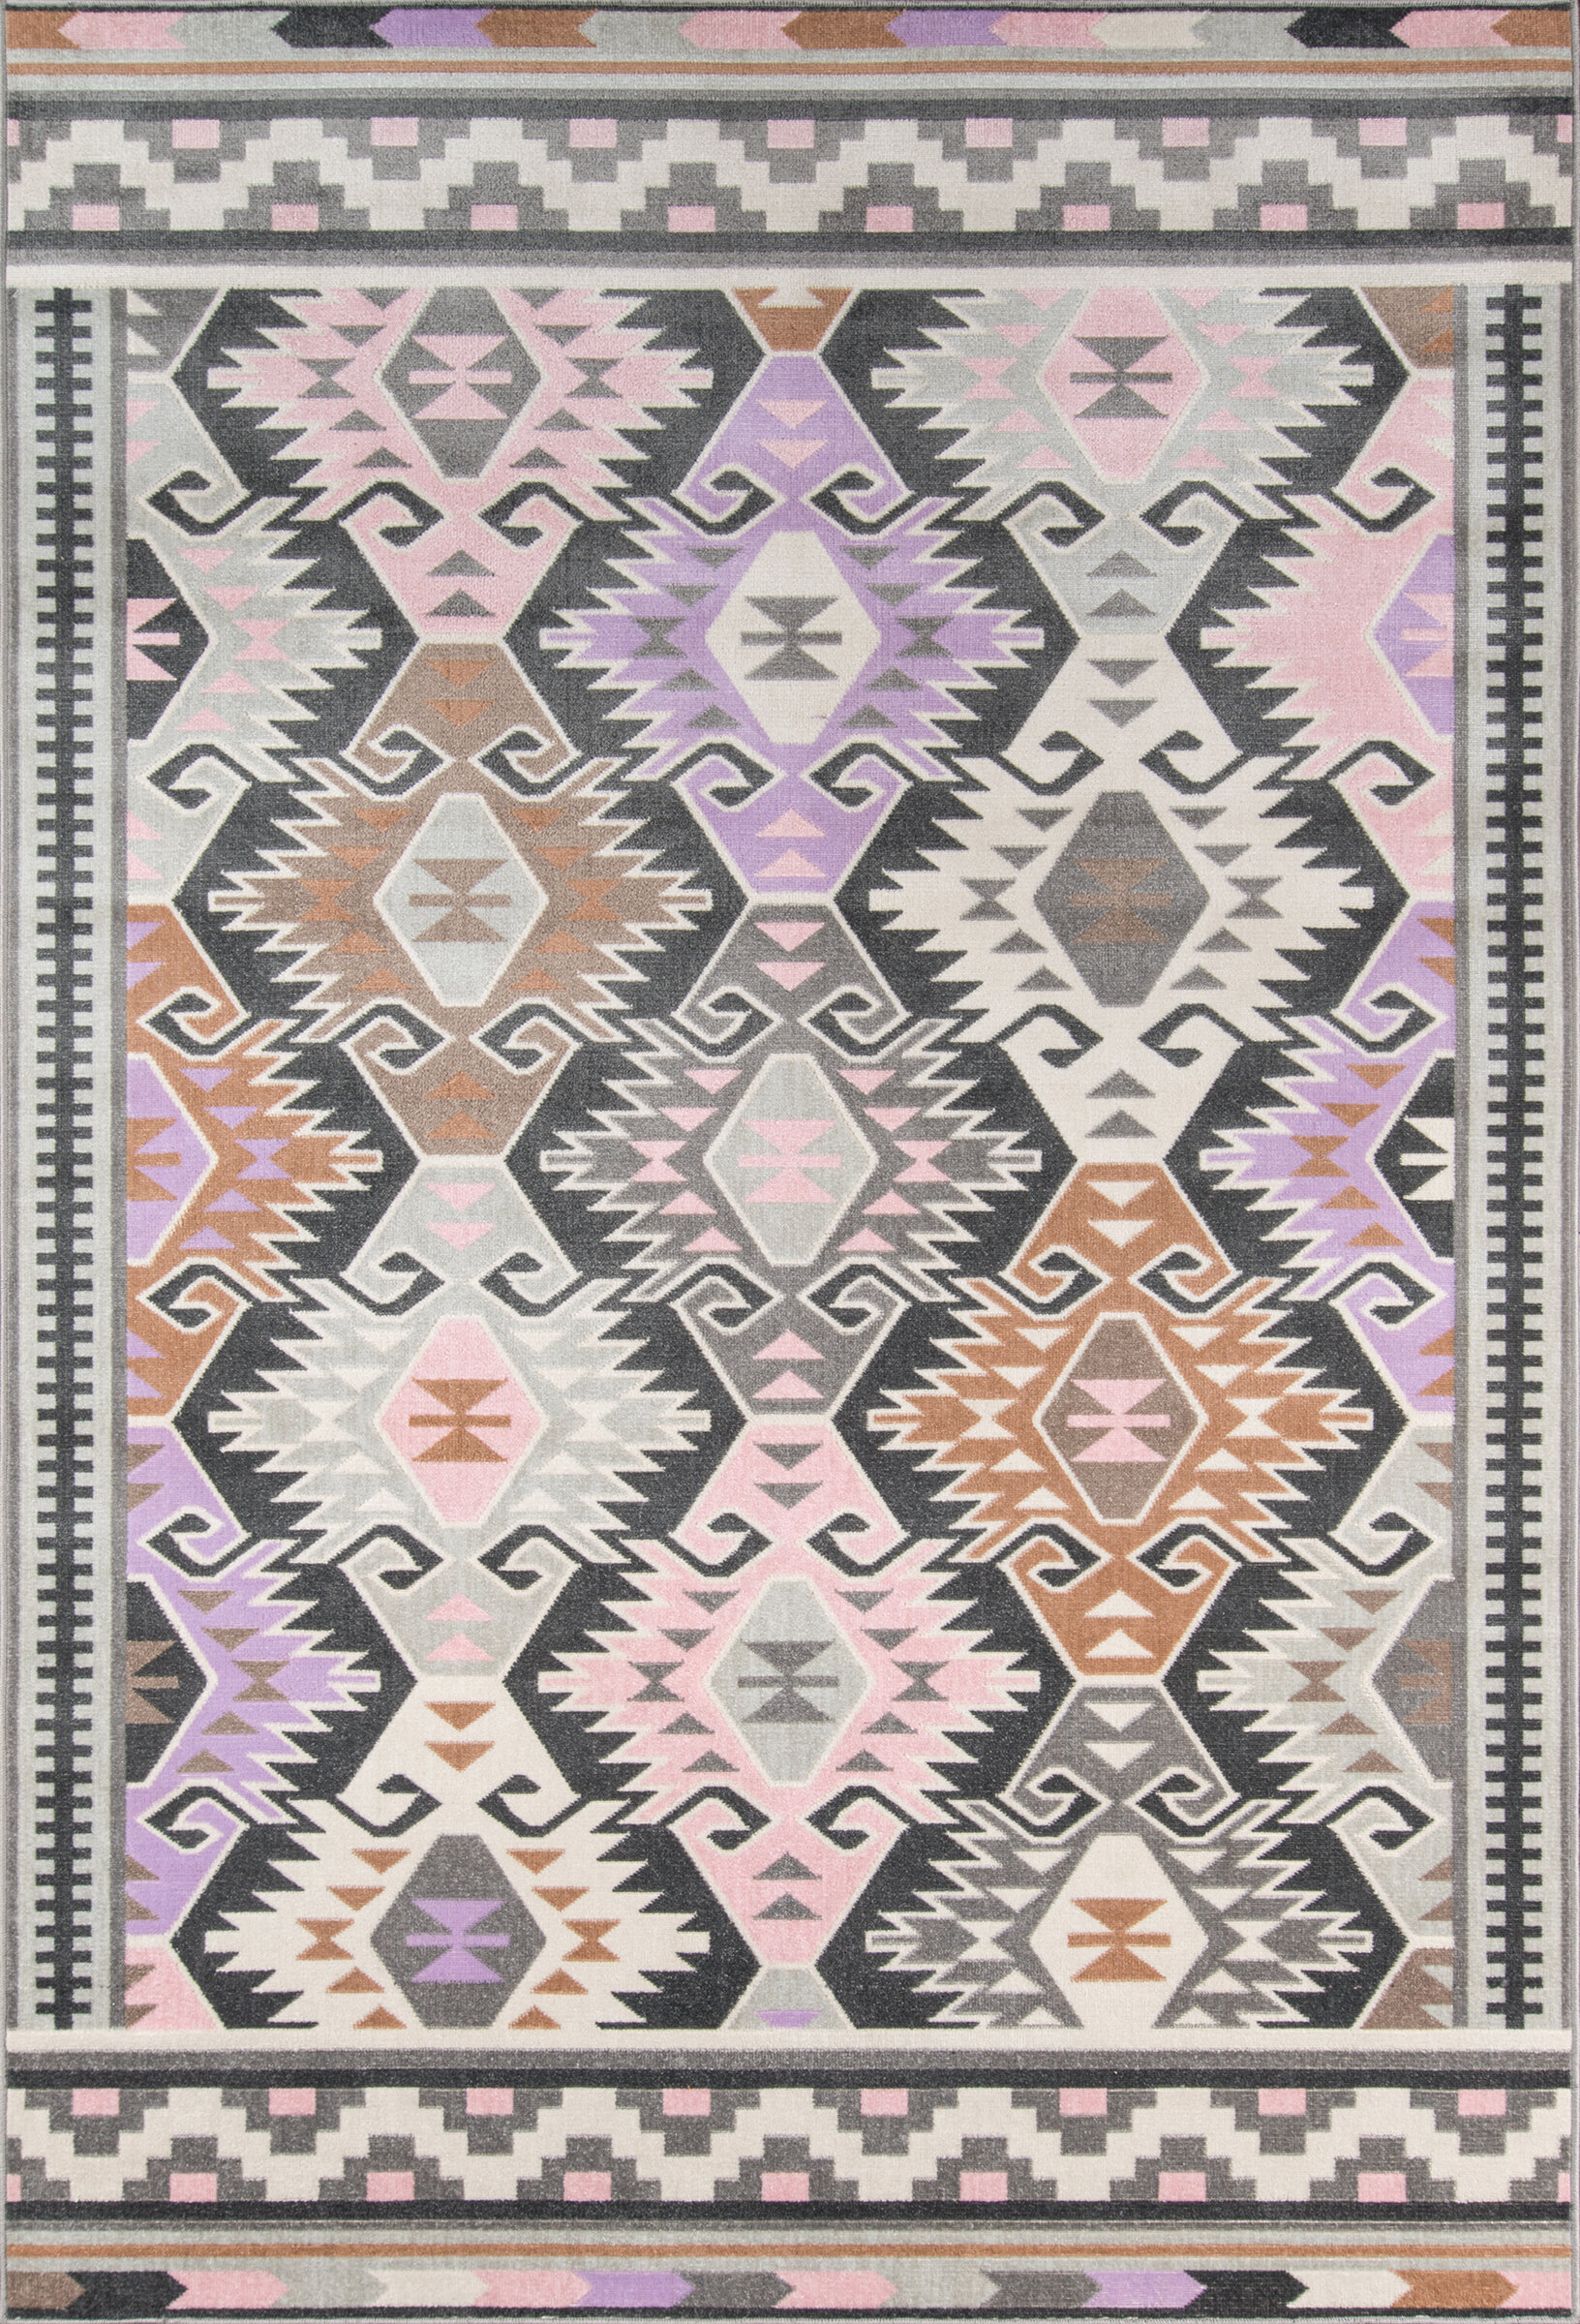 cm area charming throw tribal wonderful marvell blankets rugs full of x rug cheap size bohemian vintage ideas fabulous large